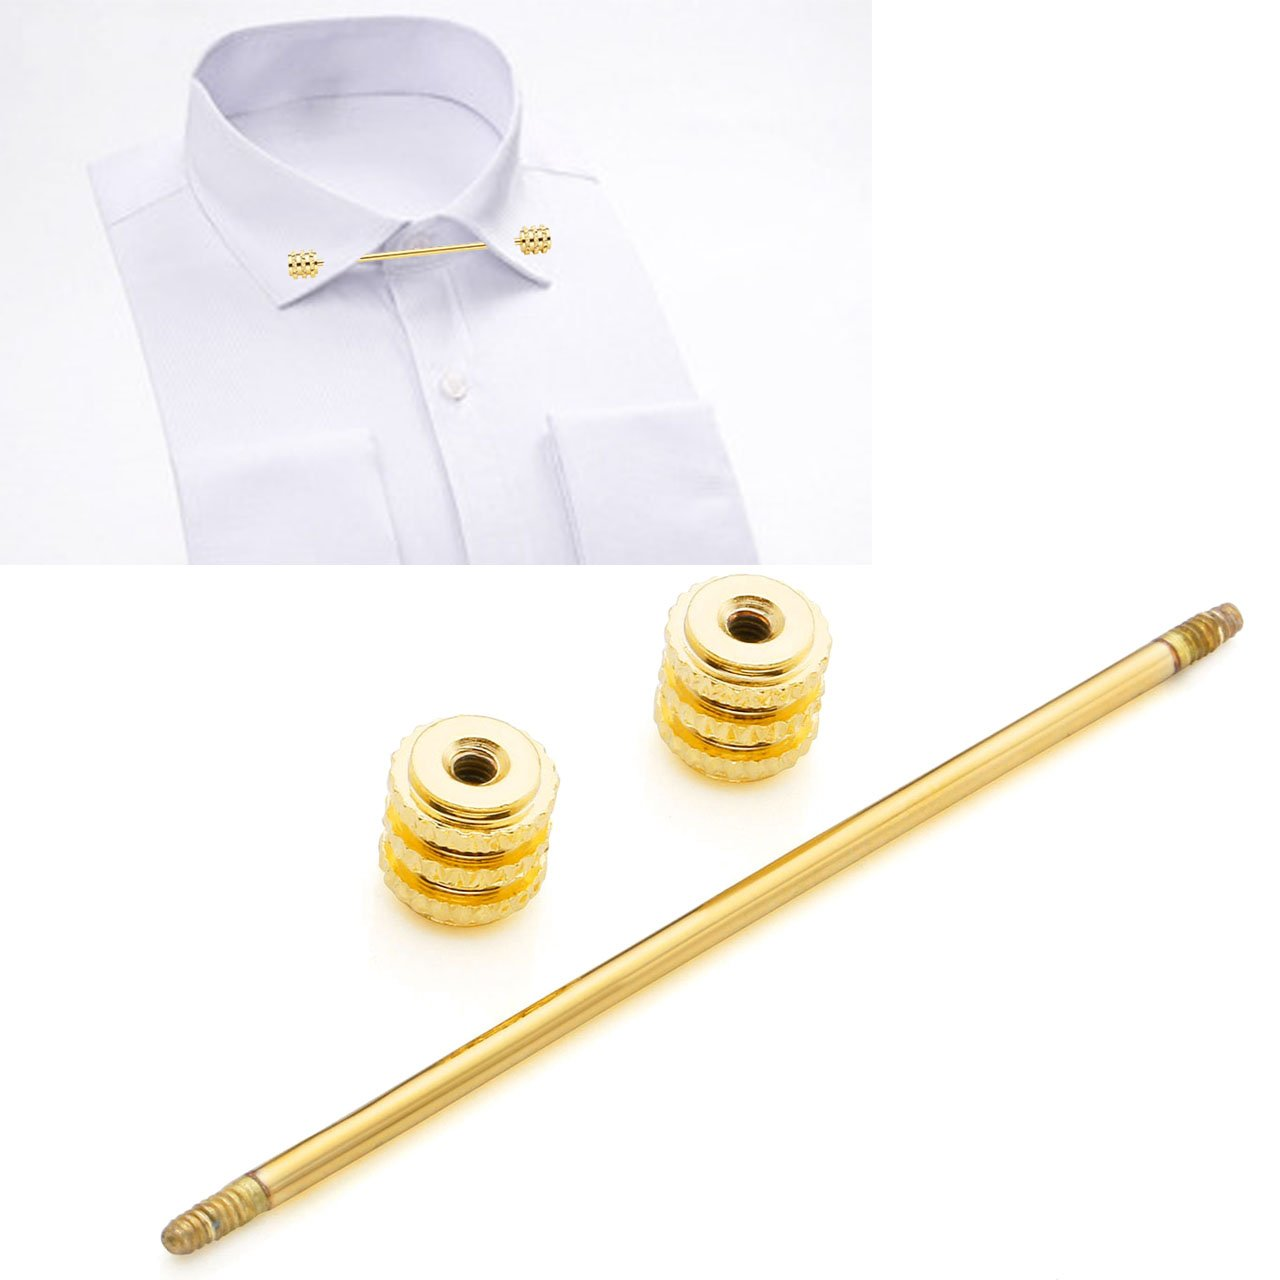 PiercingJ 2-4 pcs Mens Silvery Golden Plated Tone Stainless Steel Shirt Collar Tie Pin Stud Barbell Bar Clip Clasp Brooch by PiercingJ (Image #7)